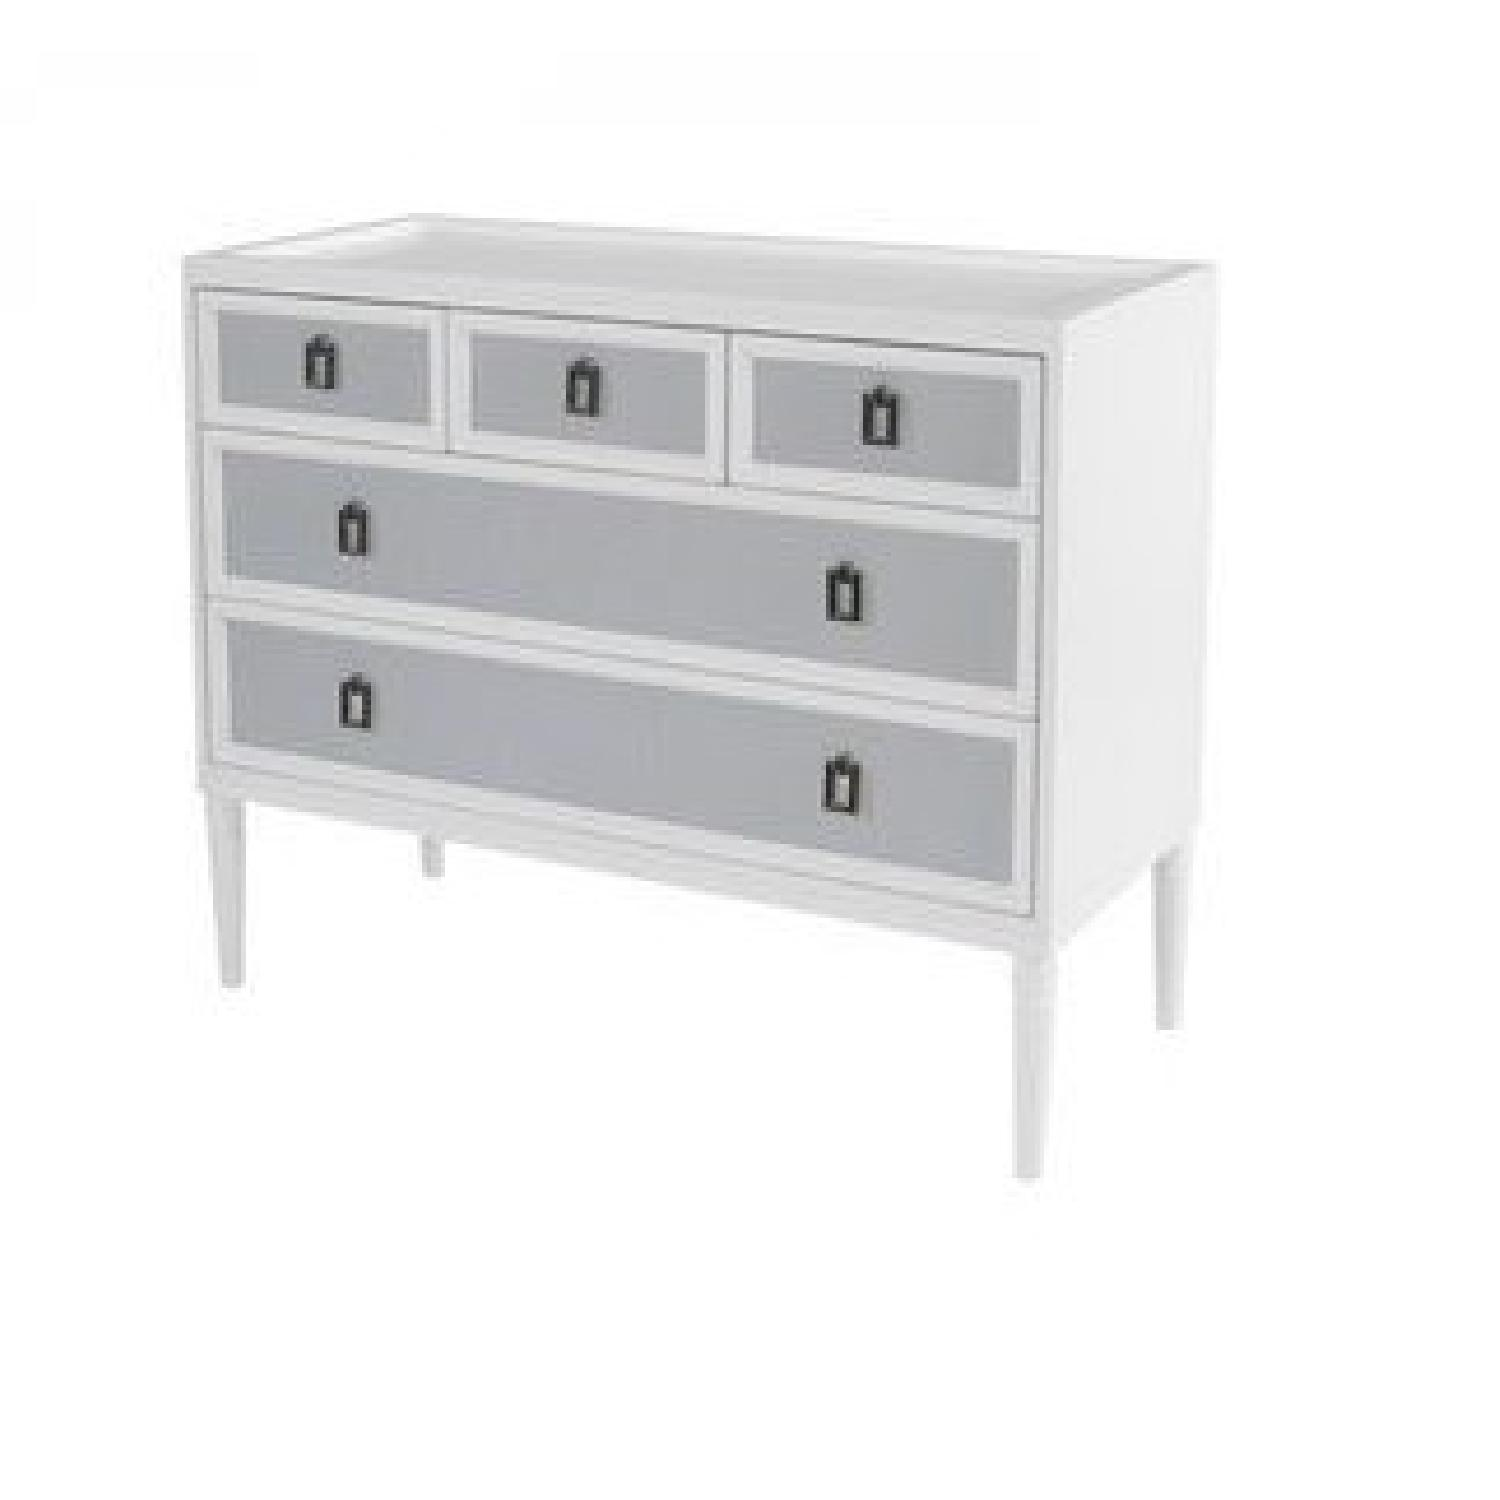 kitchen race white com and tools blue drawer furniture legar assembly dp dining dresser series amazon no car kids collection